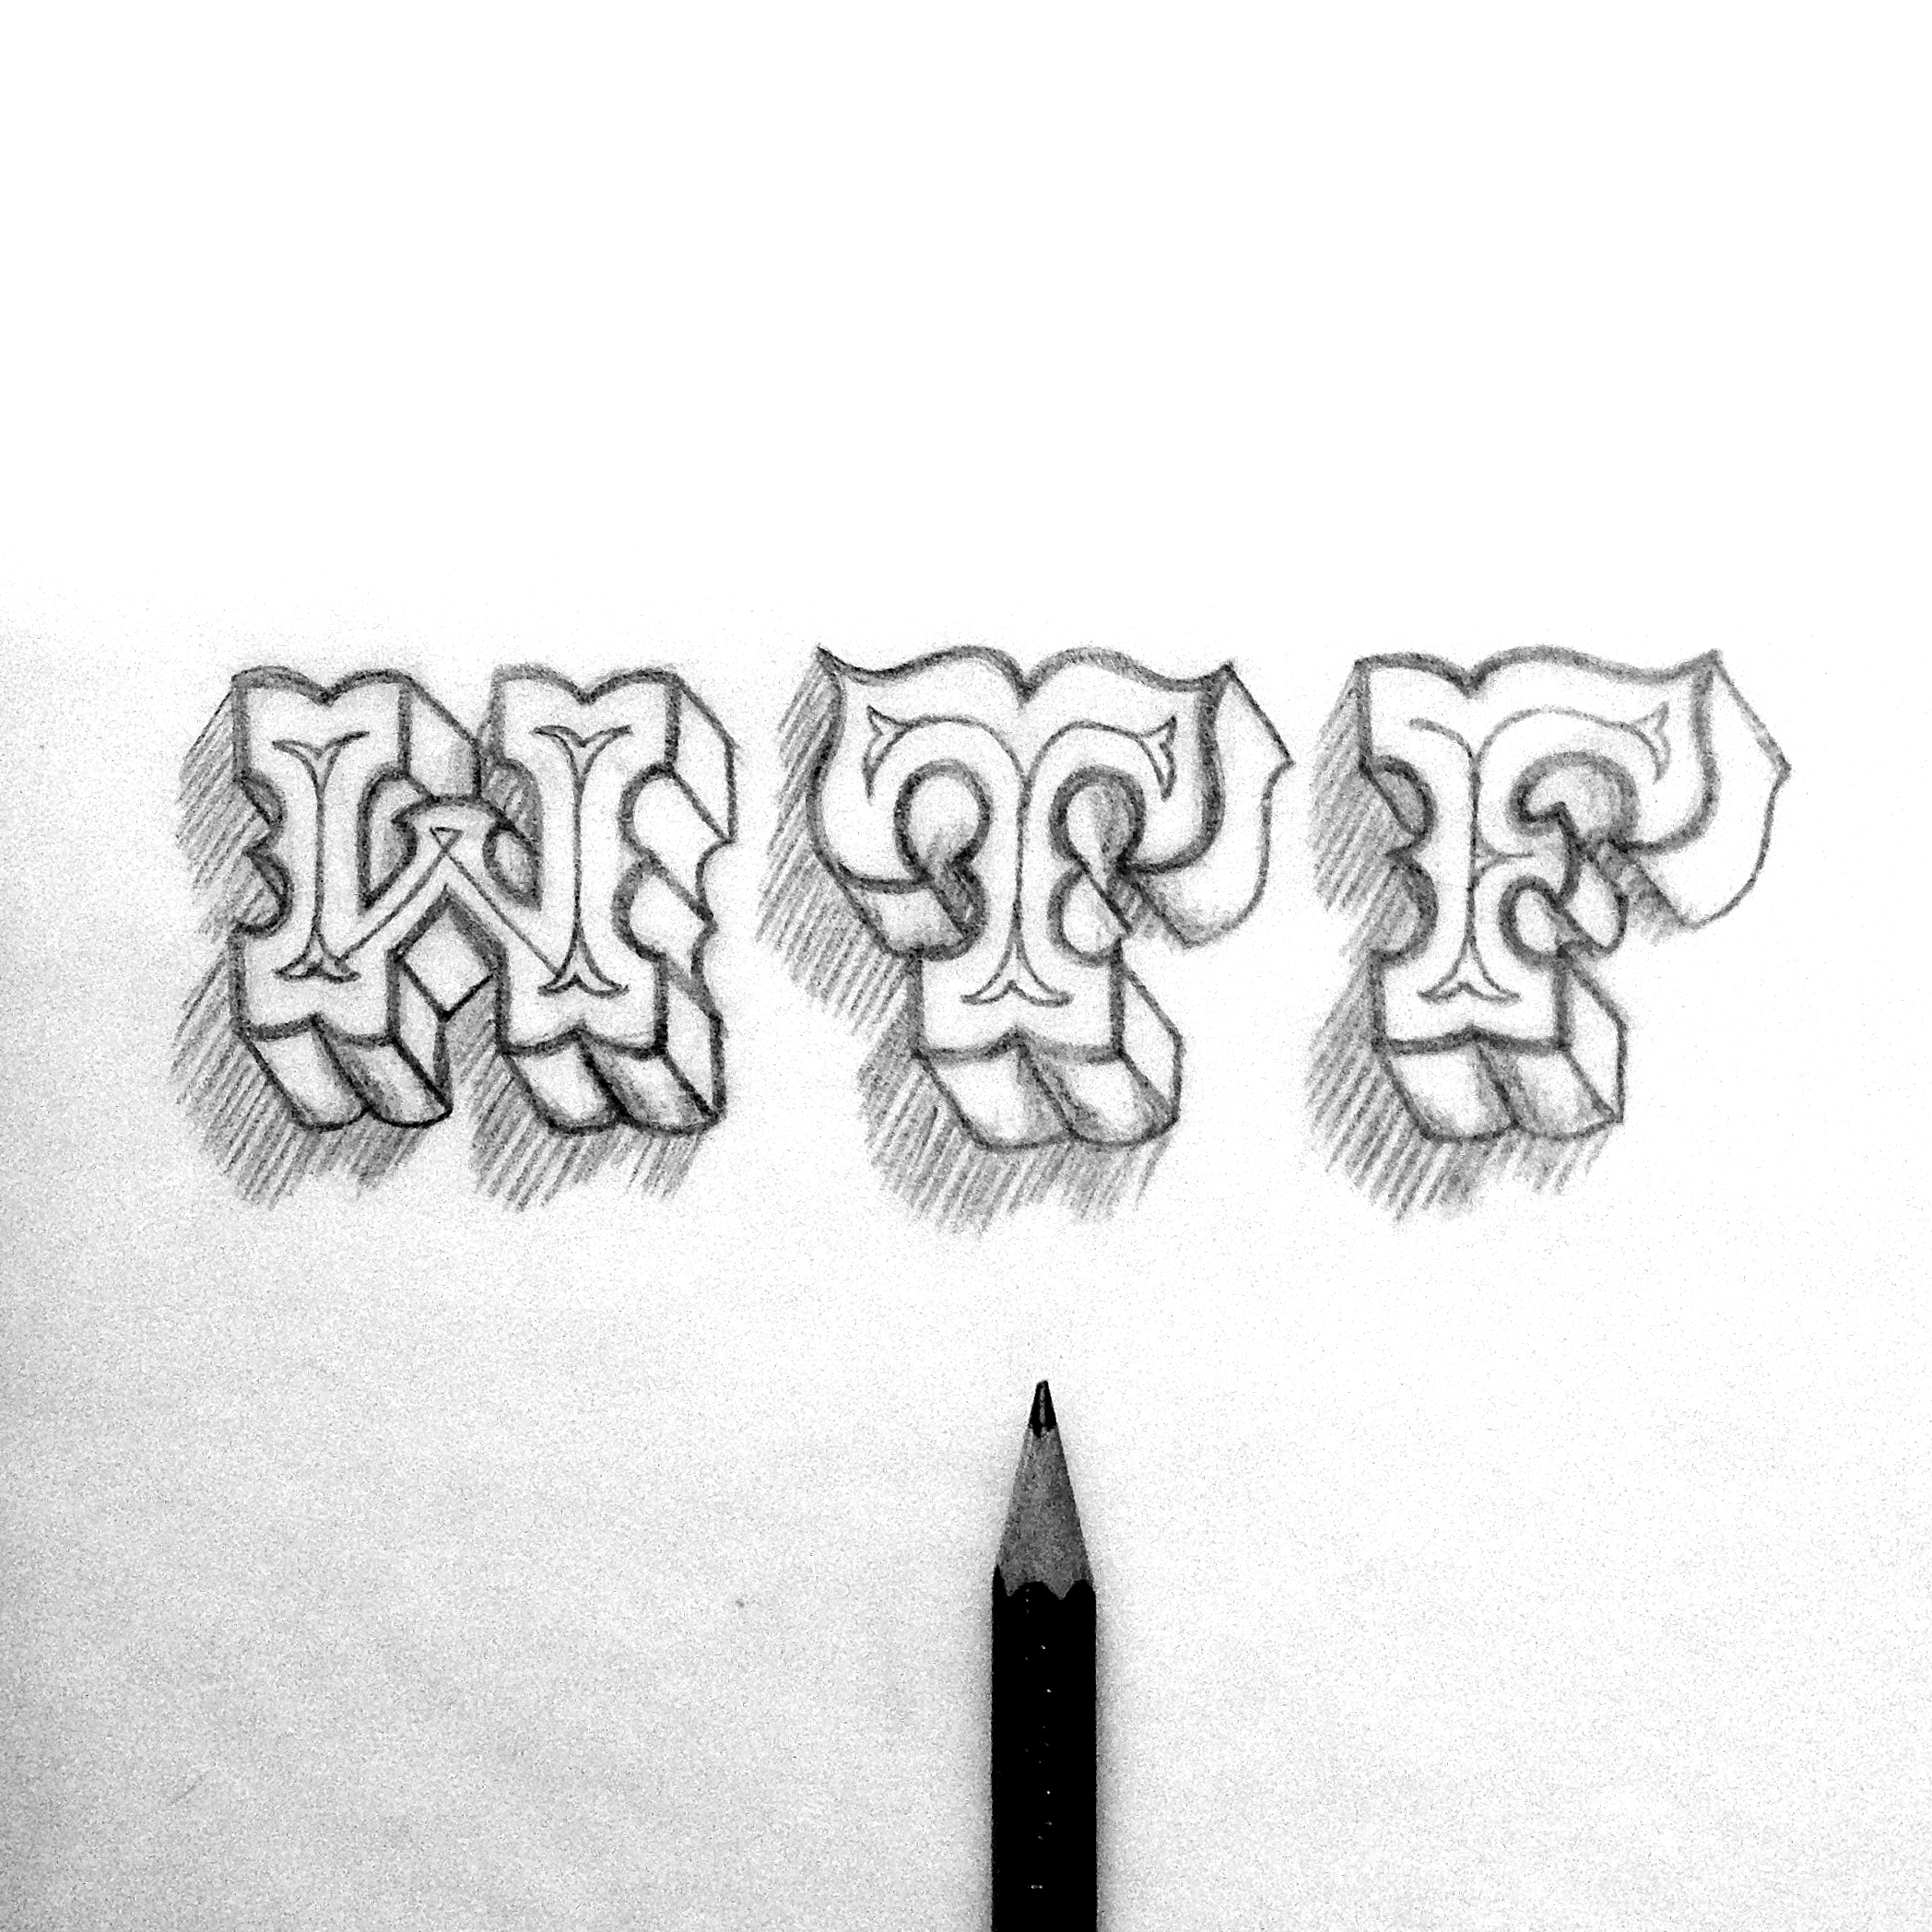 WTF-circus-3D-lettering.jpg